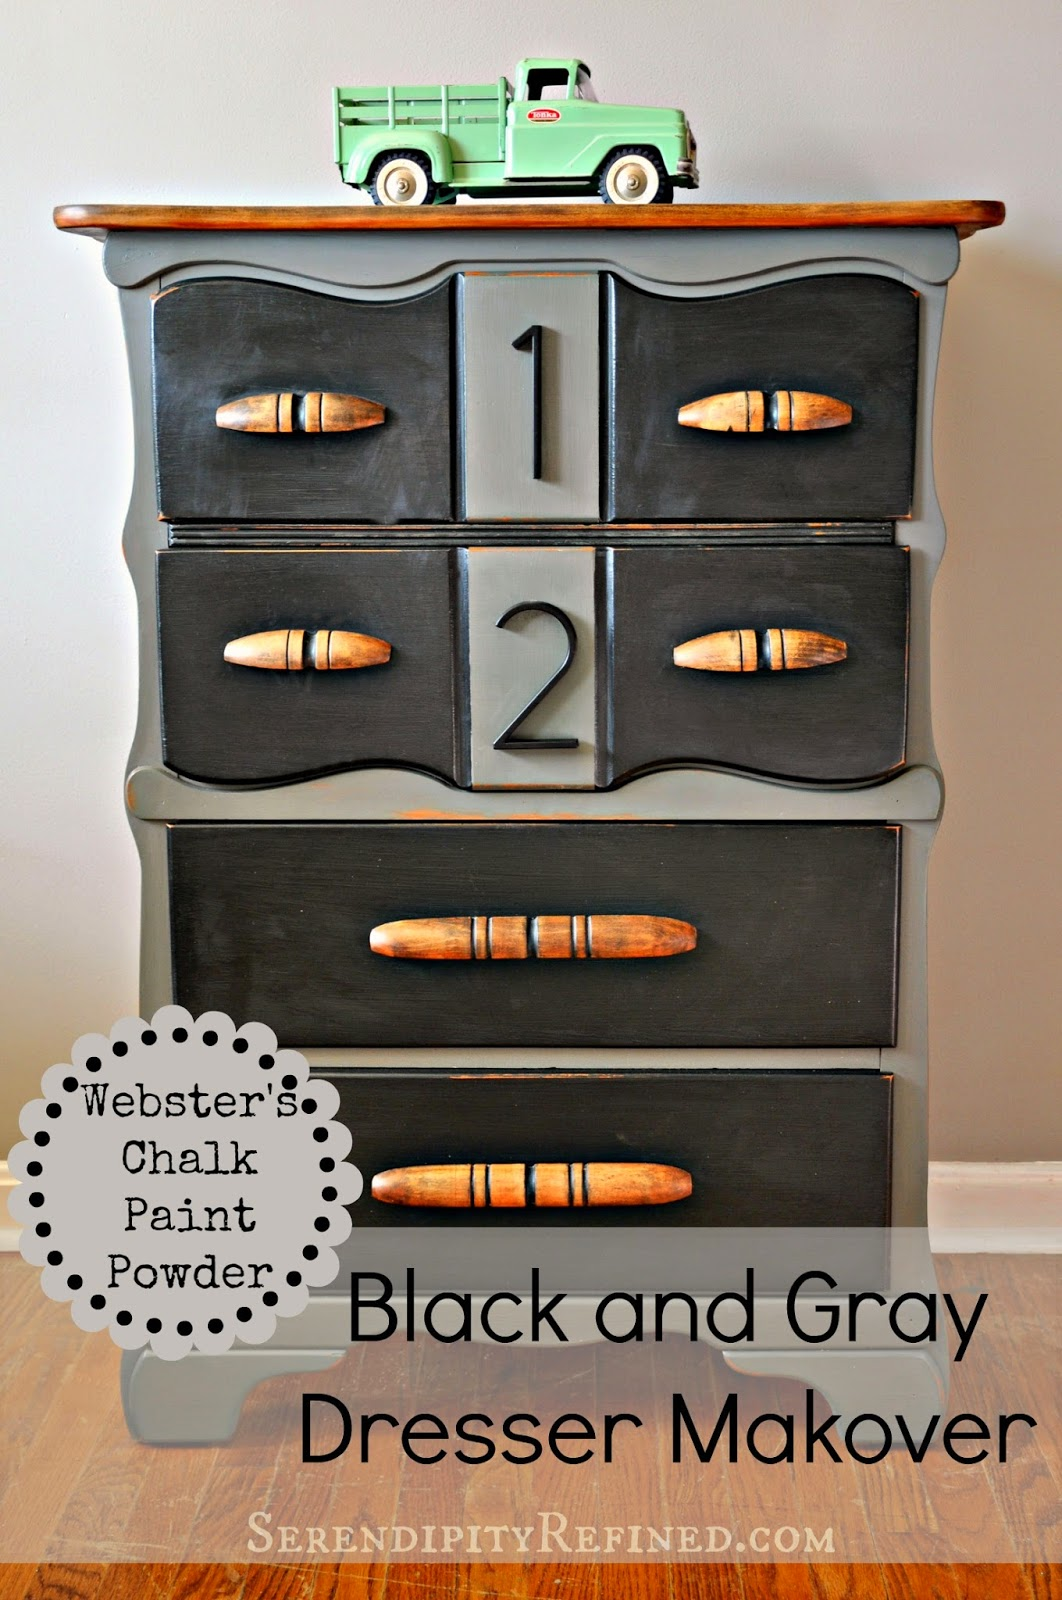 Webster's Painted Furniture Chalk Paint Powder DIY Tutorial Black and Gray Painted Dresser by SerendipityRefined.com